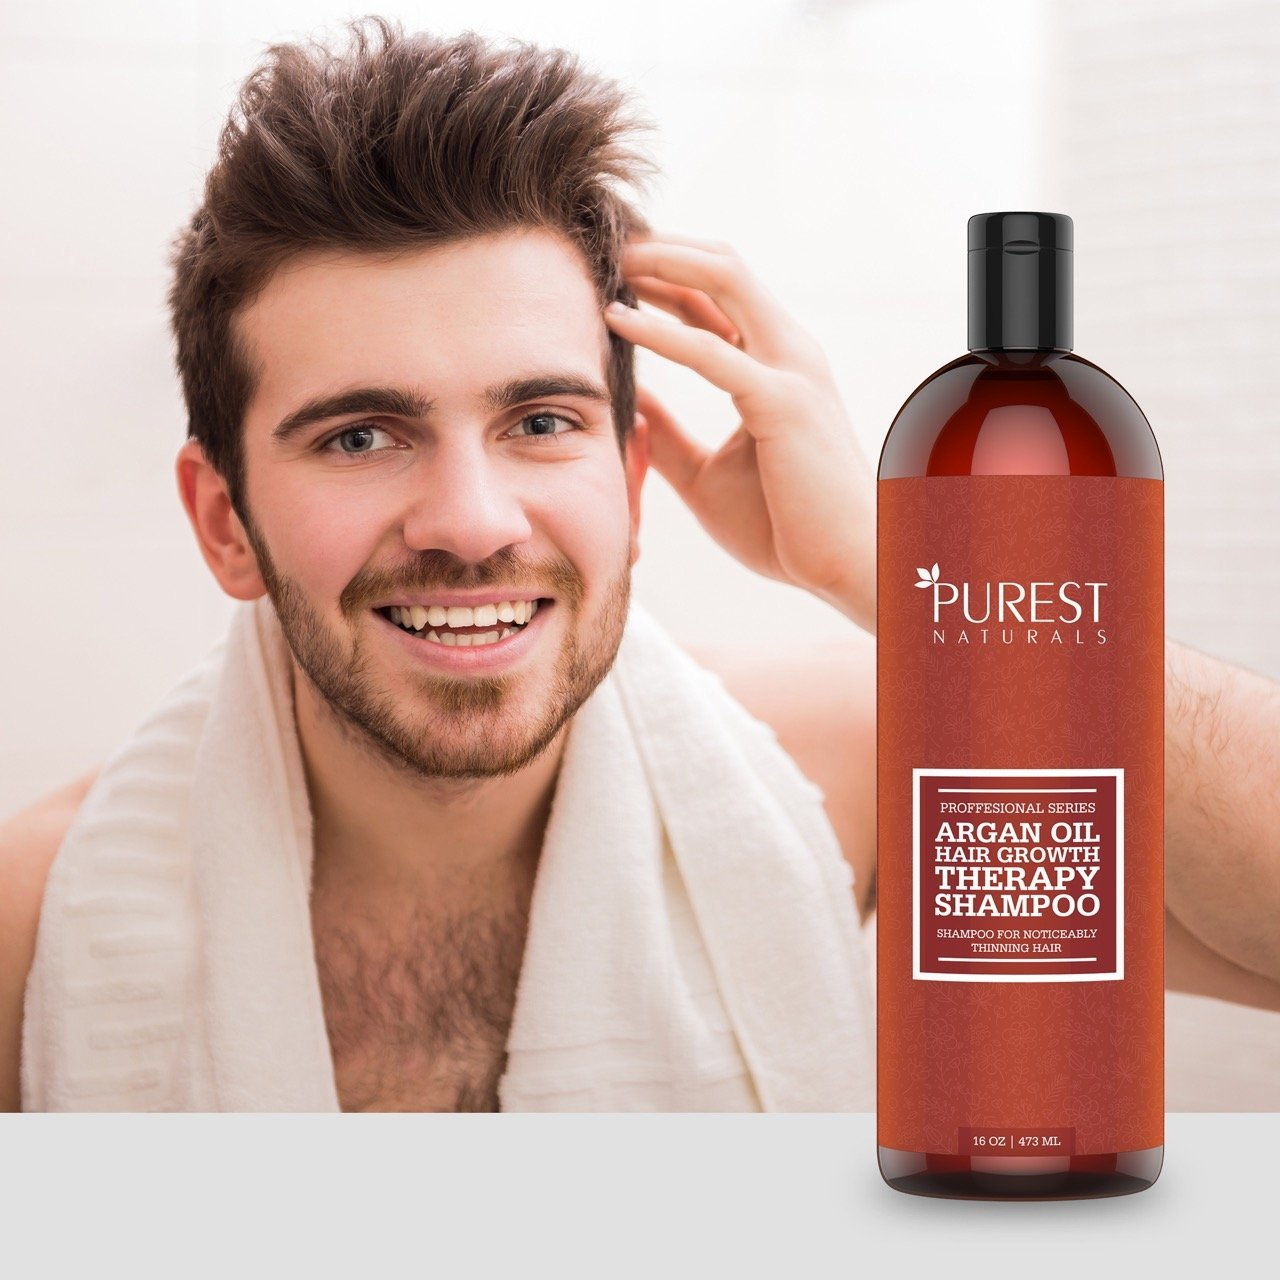 Purest Naturals Organic Argan Oil Hair Loss Shampoo For